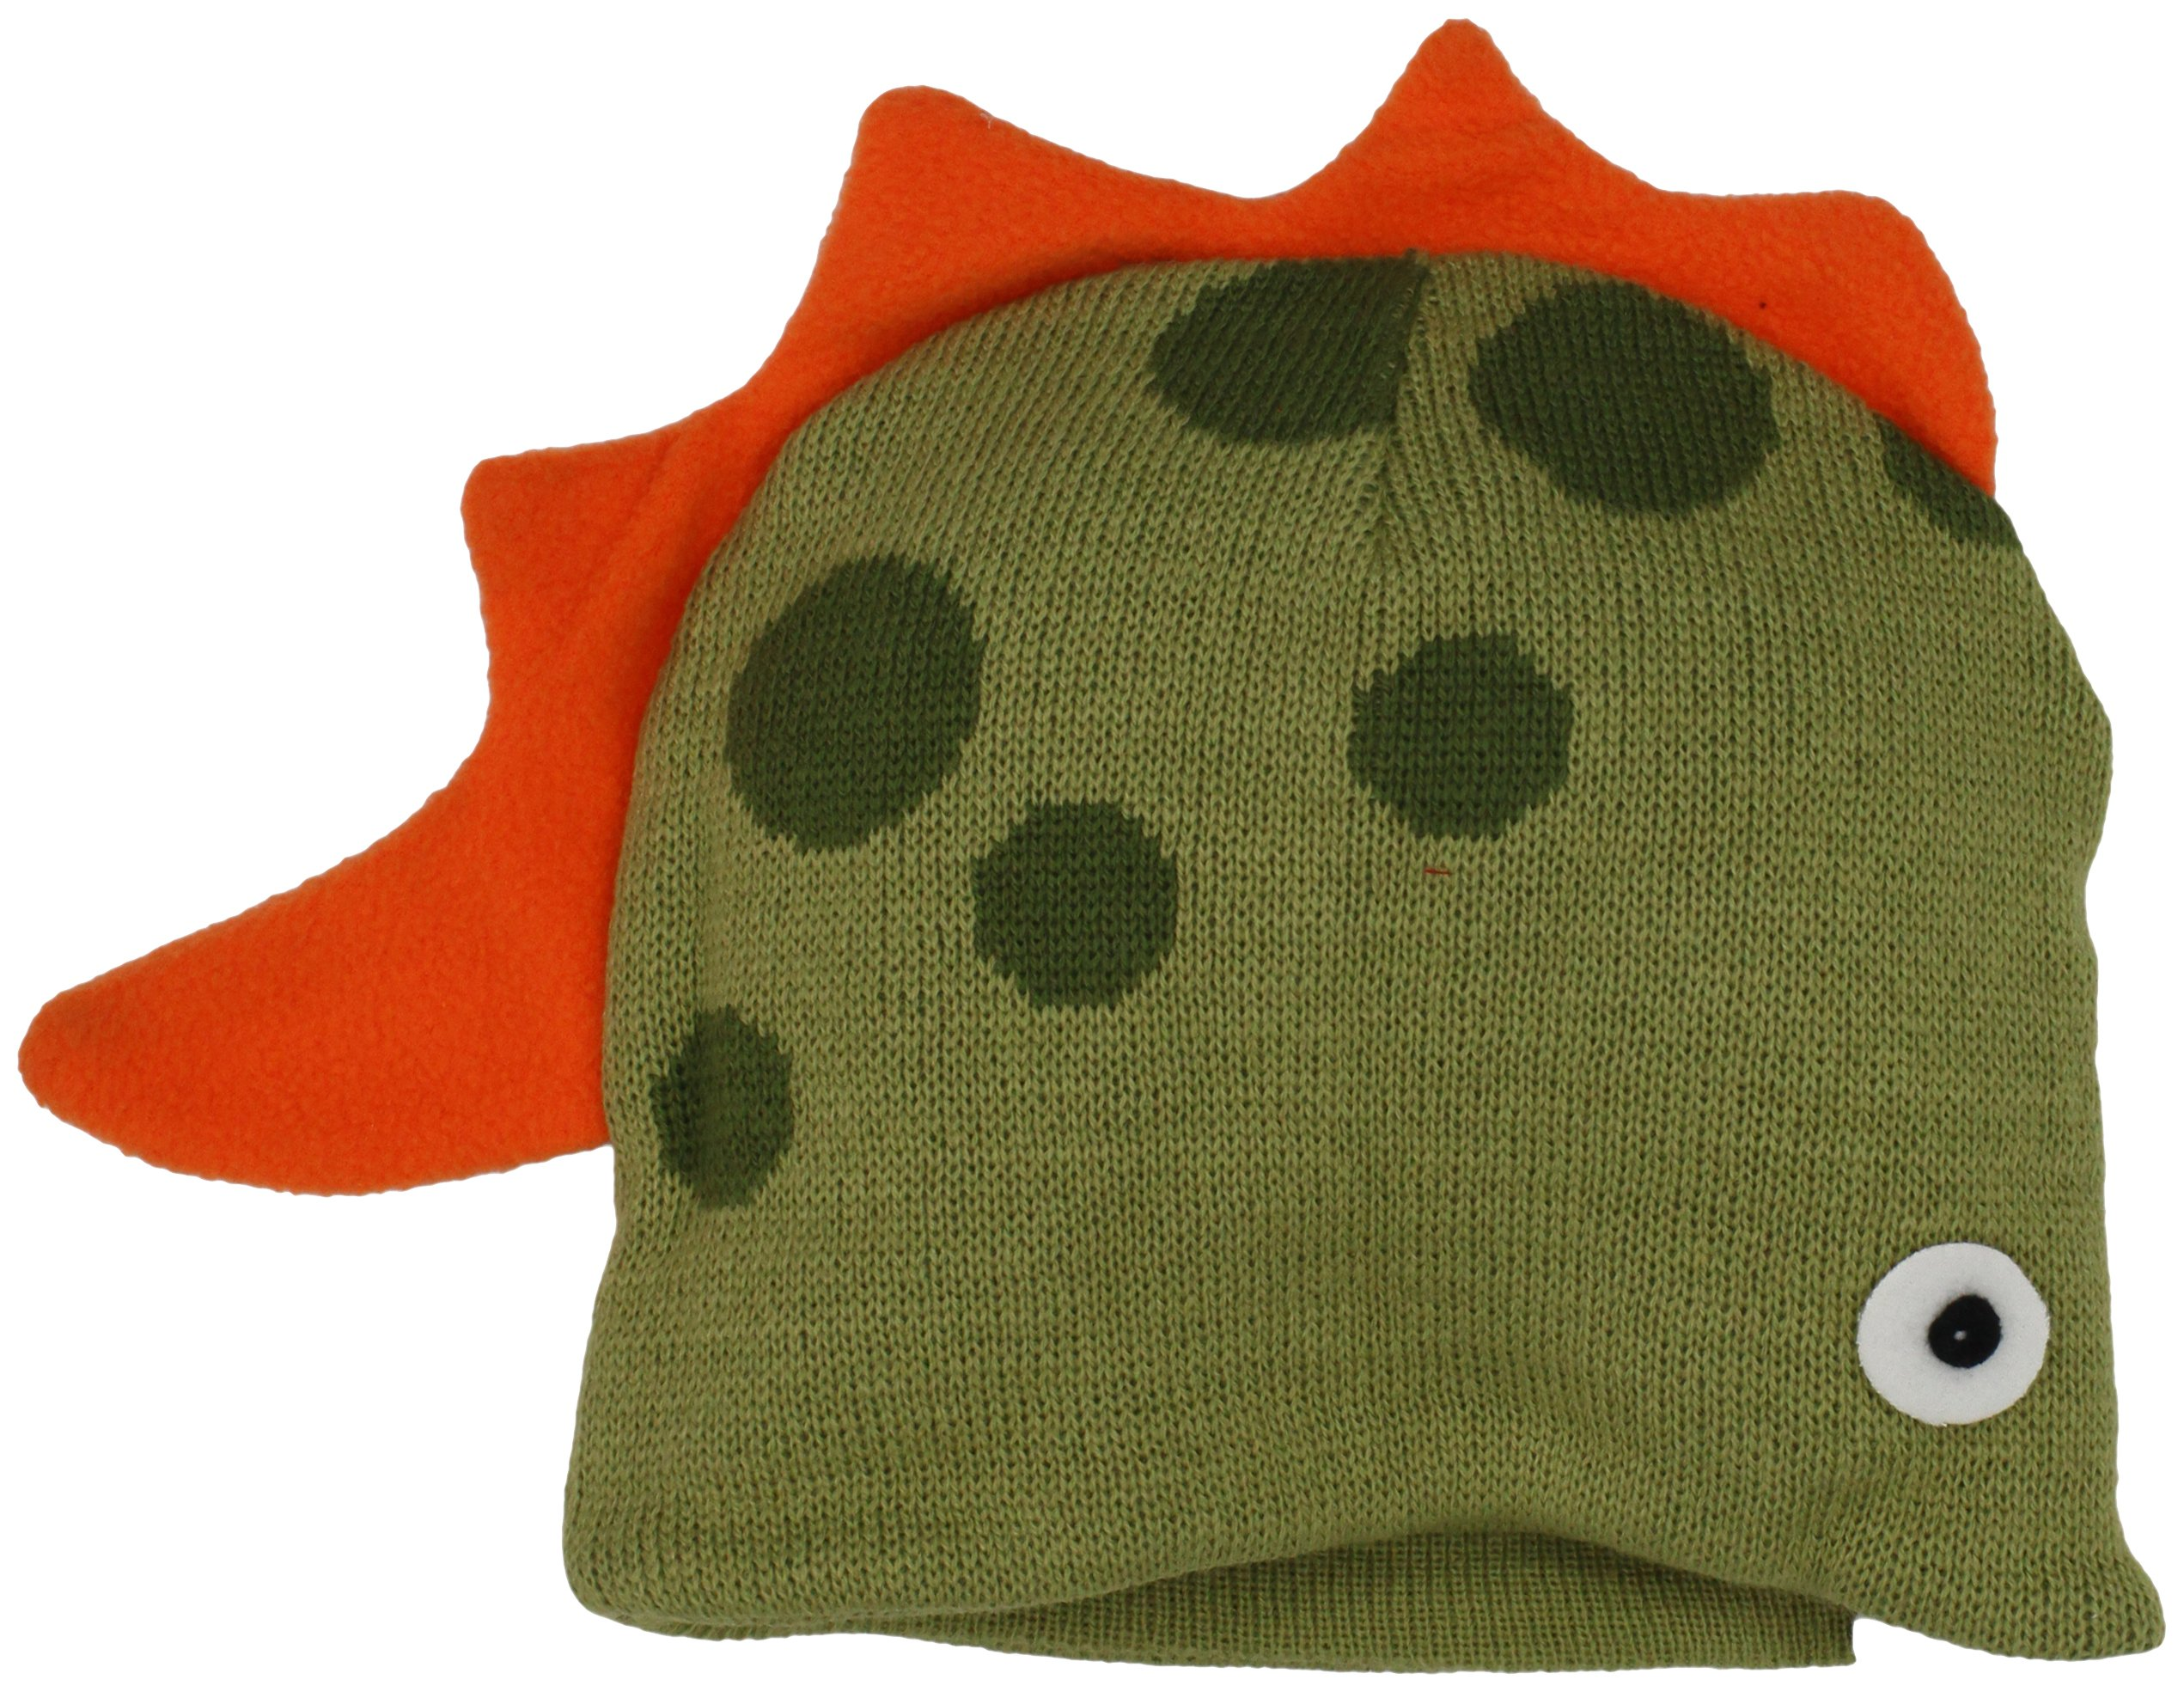 Kidorable Dinosaur Hat, Soft Knit Hat for Kids, Green, One Size Fits Most, Knit Winter Hat for Toddlers, Little Kids, Big Kids